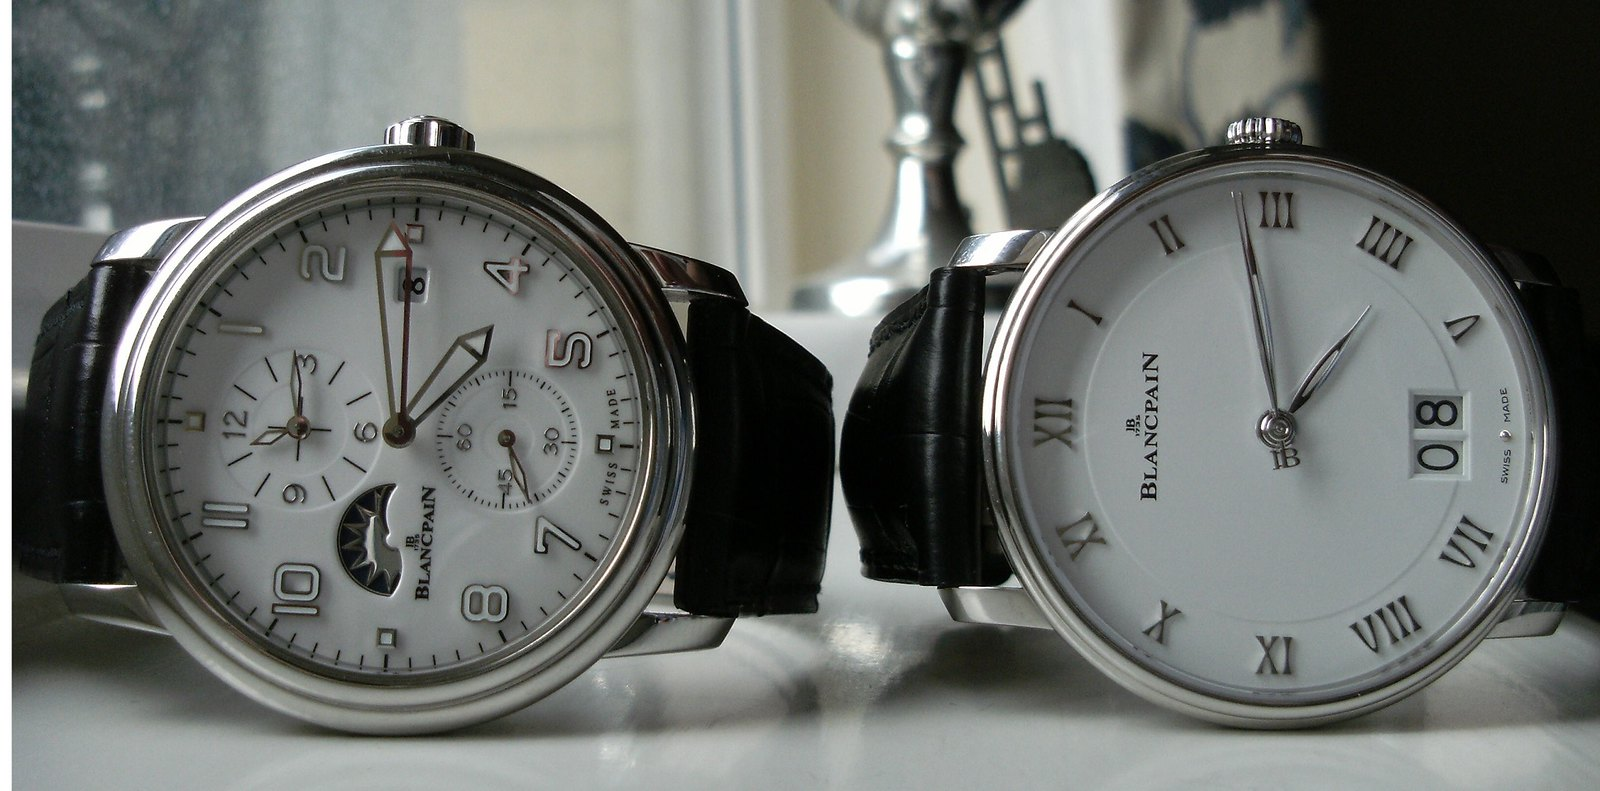 Blancpain Leman and Villeret watches